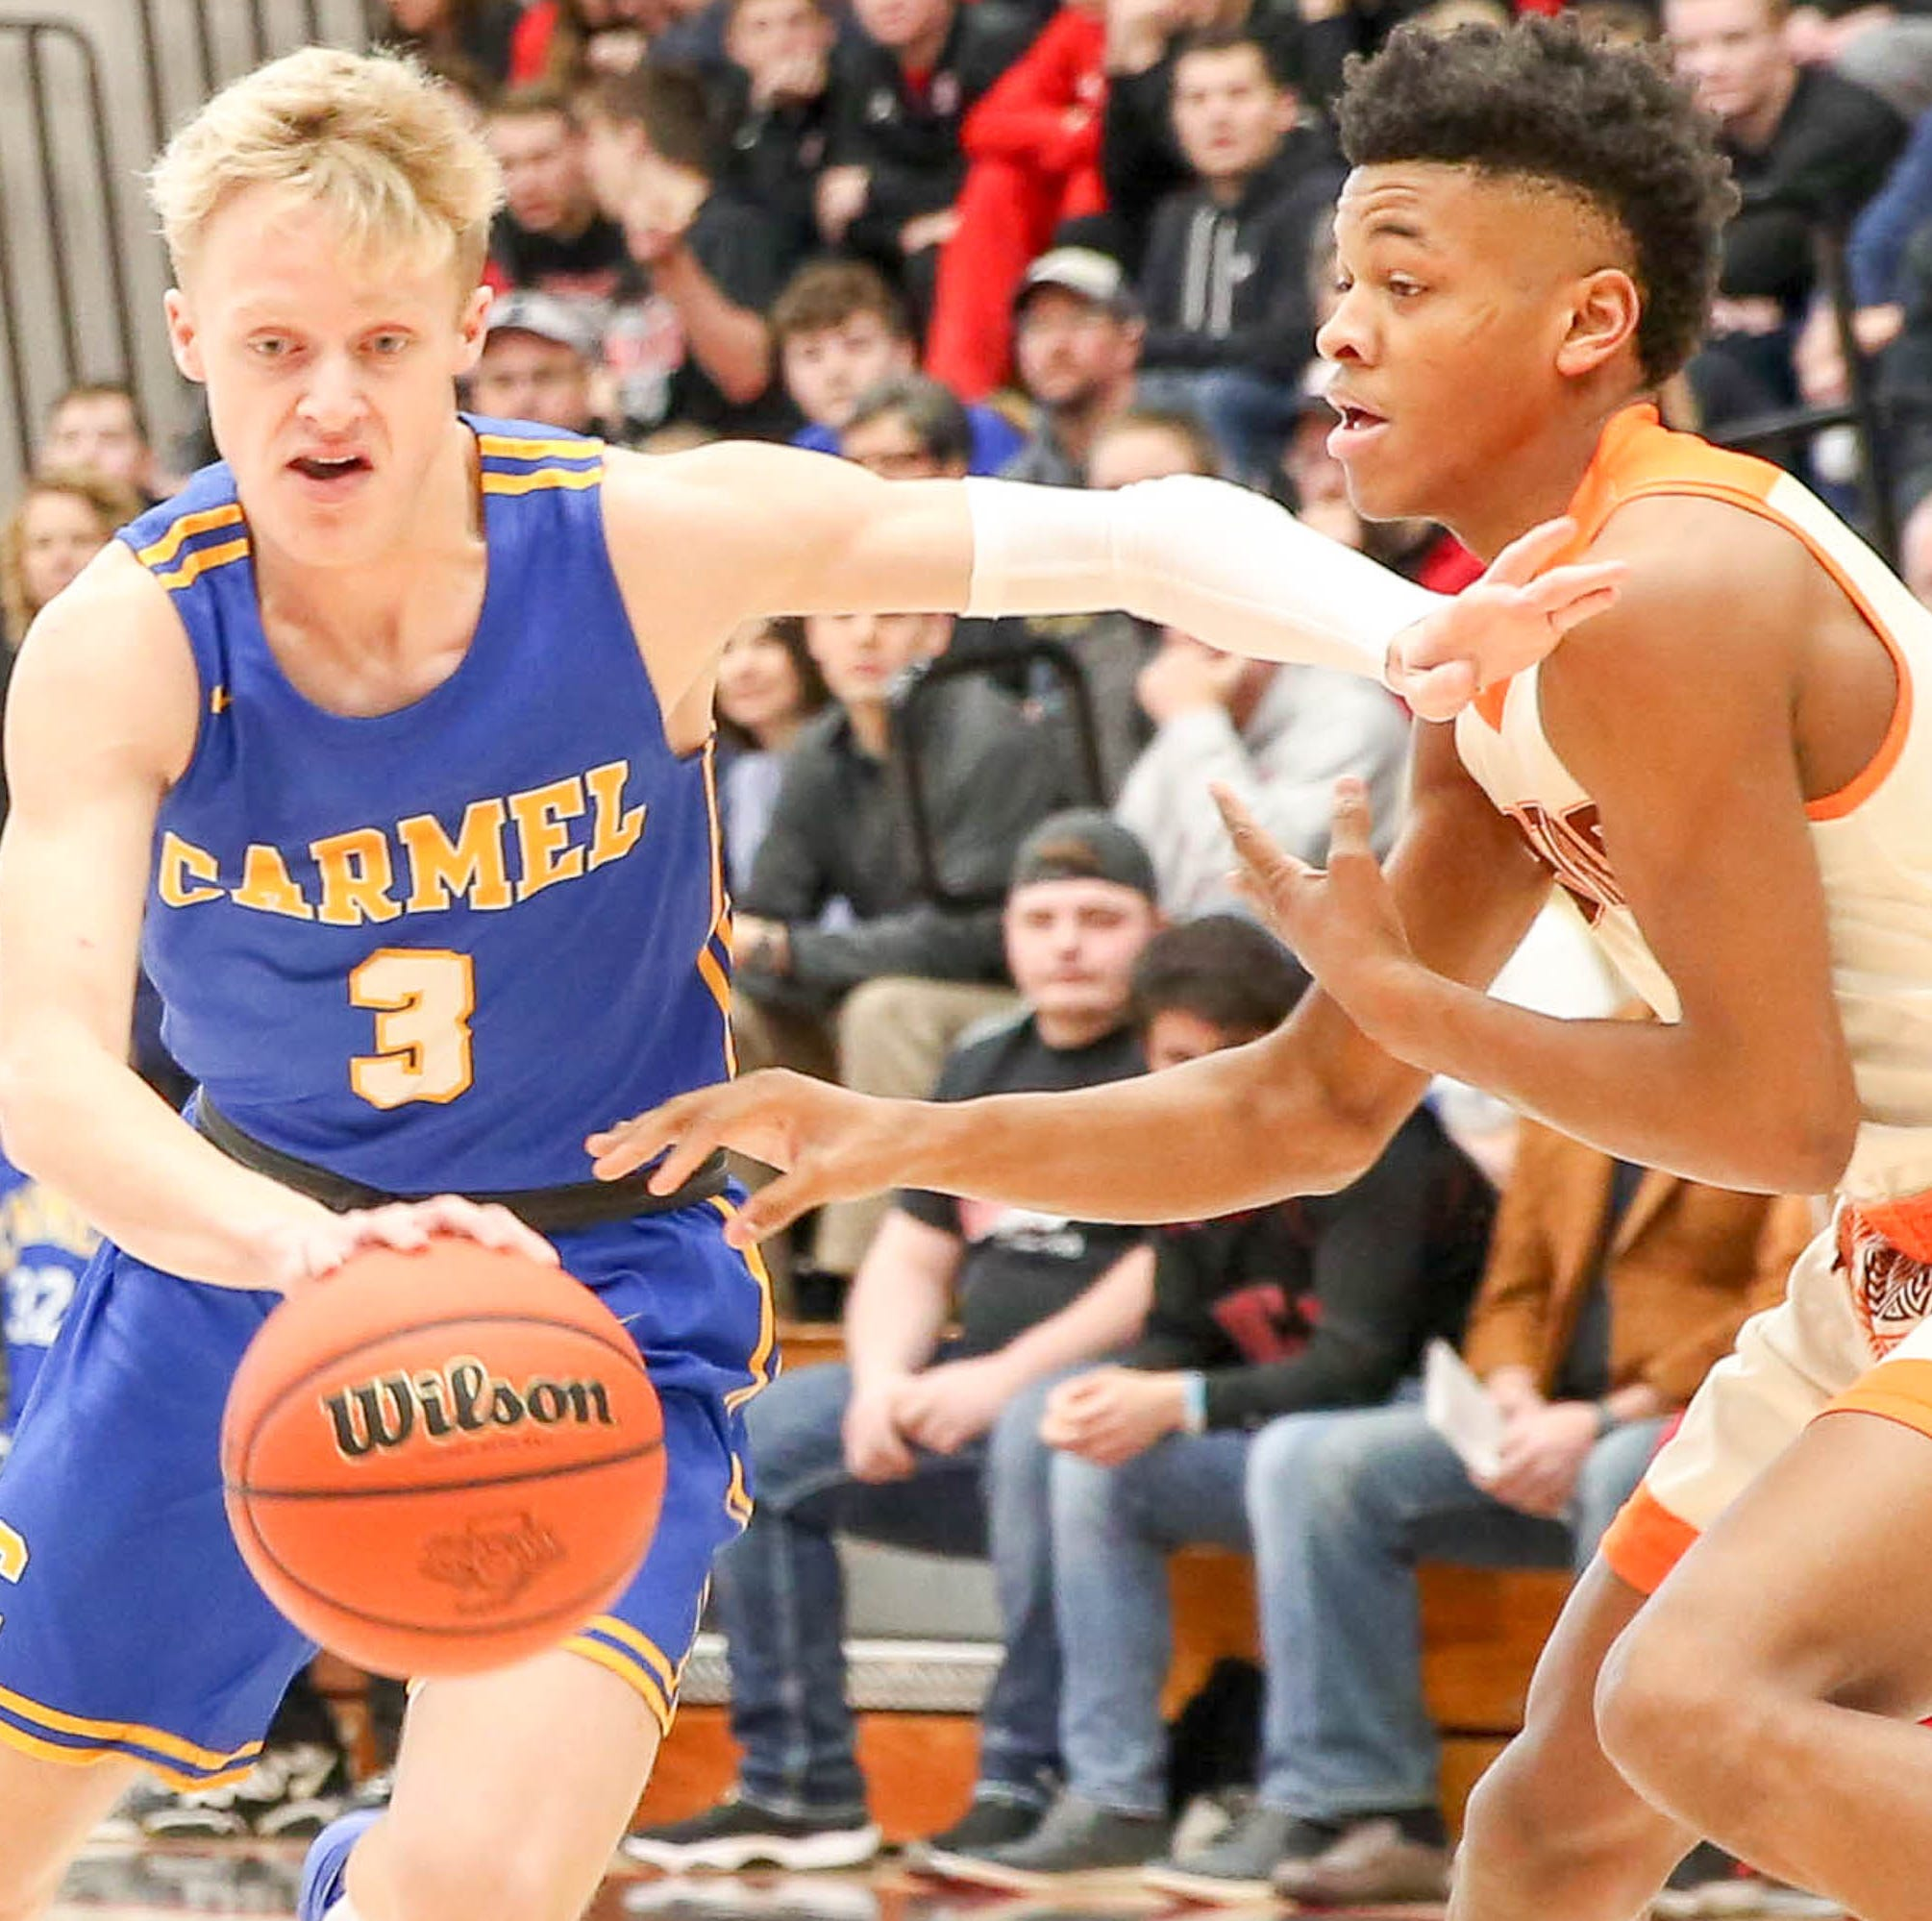 Carmel beat Zionsville to win a regional title. The Greyhounds' method is boring, but it works.